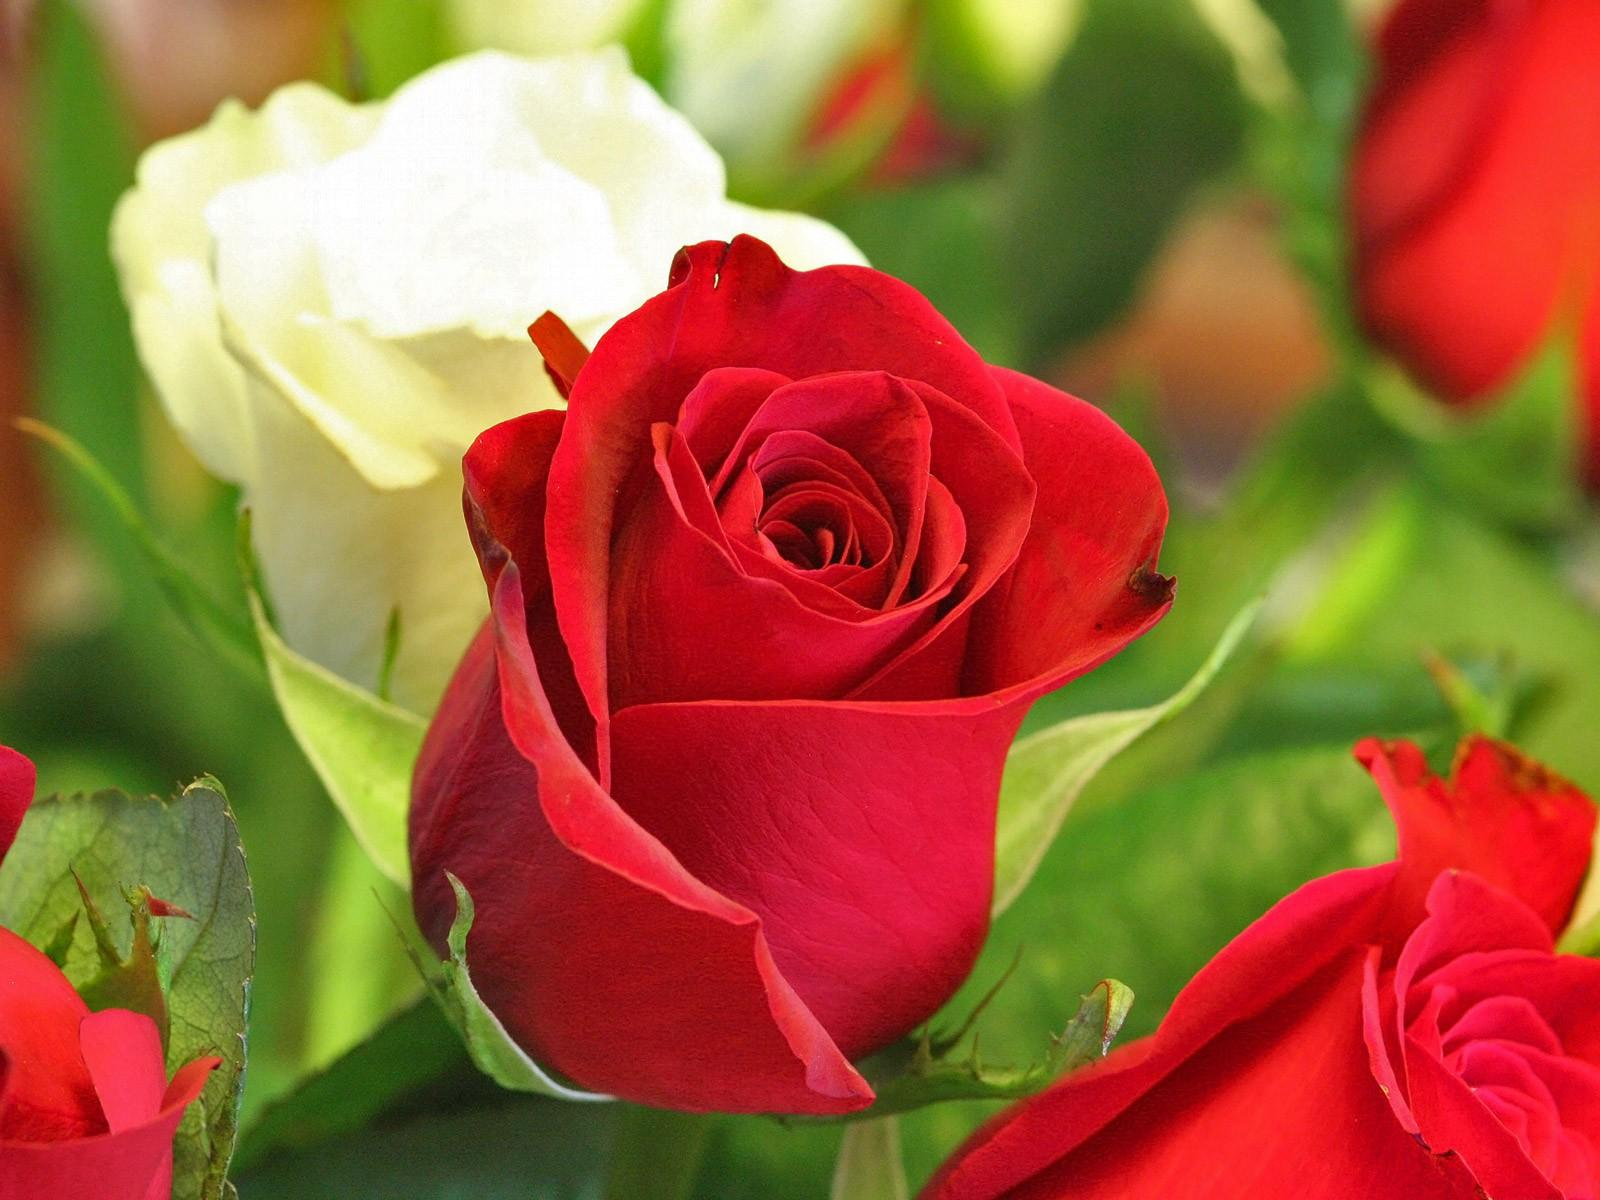 Pictures world 1600 1200 beautiful red rose wallpaper - Pretty roses wallpaper ...